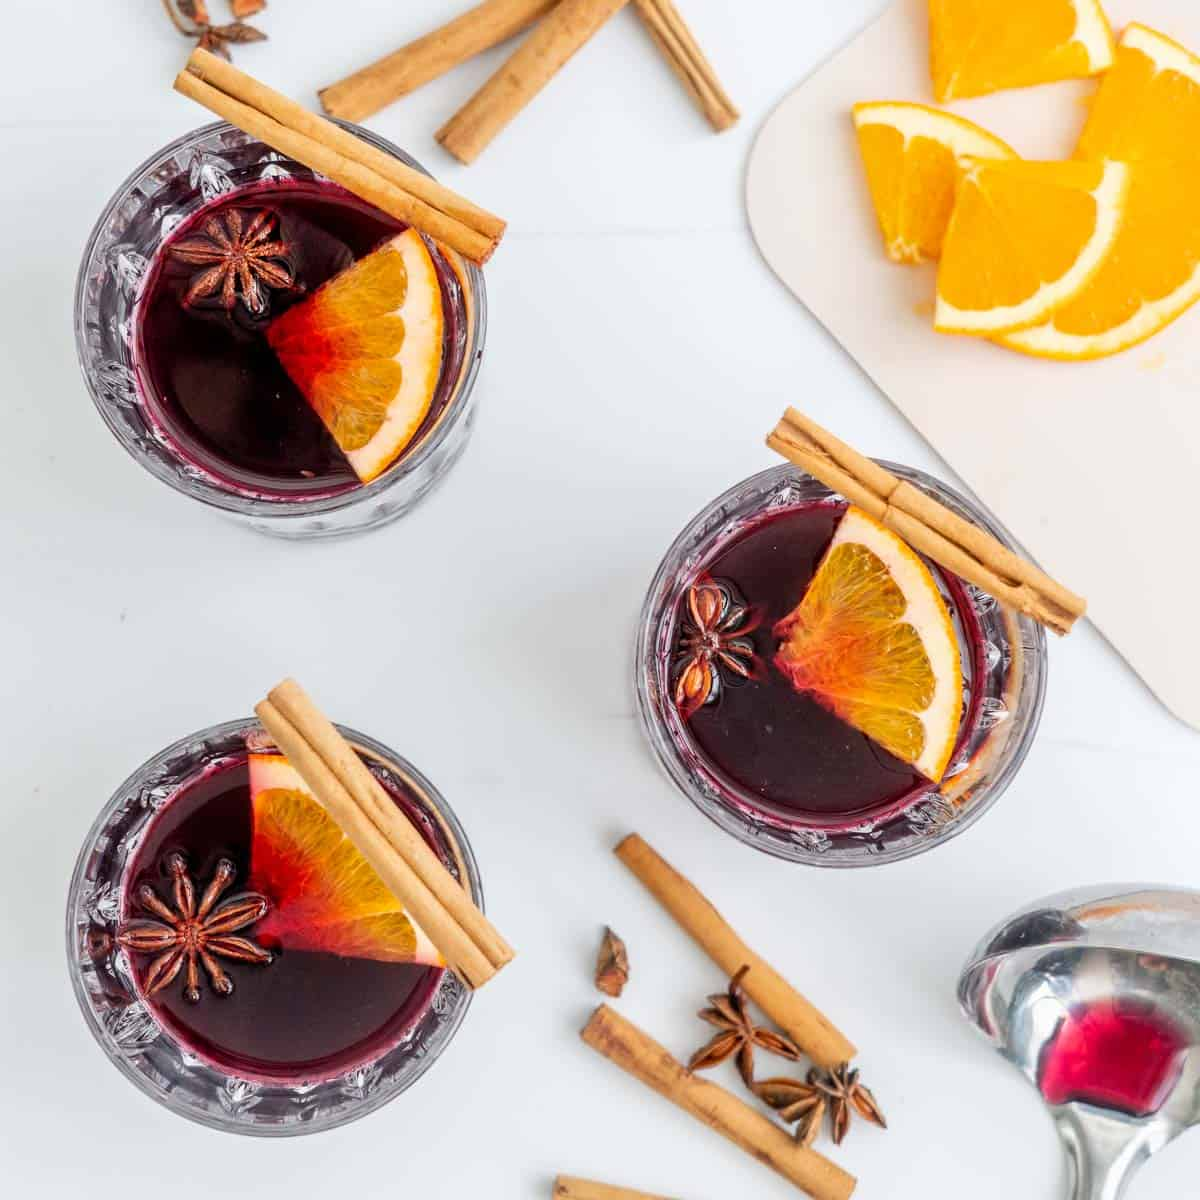 Overhead looking down at three glasses of mulled wine with orange slices, cinnamon quills and star anise.